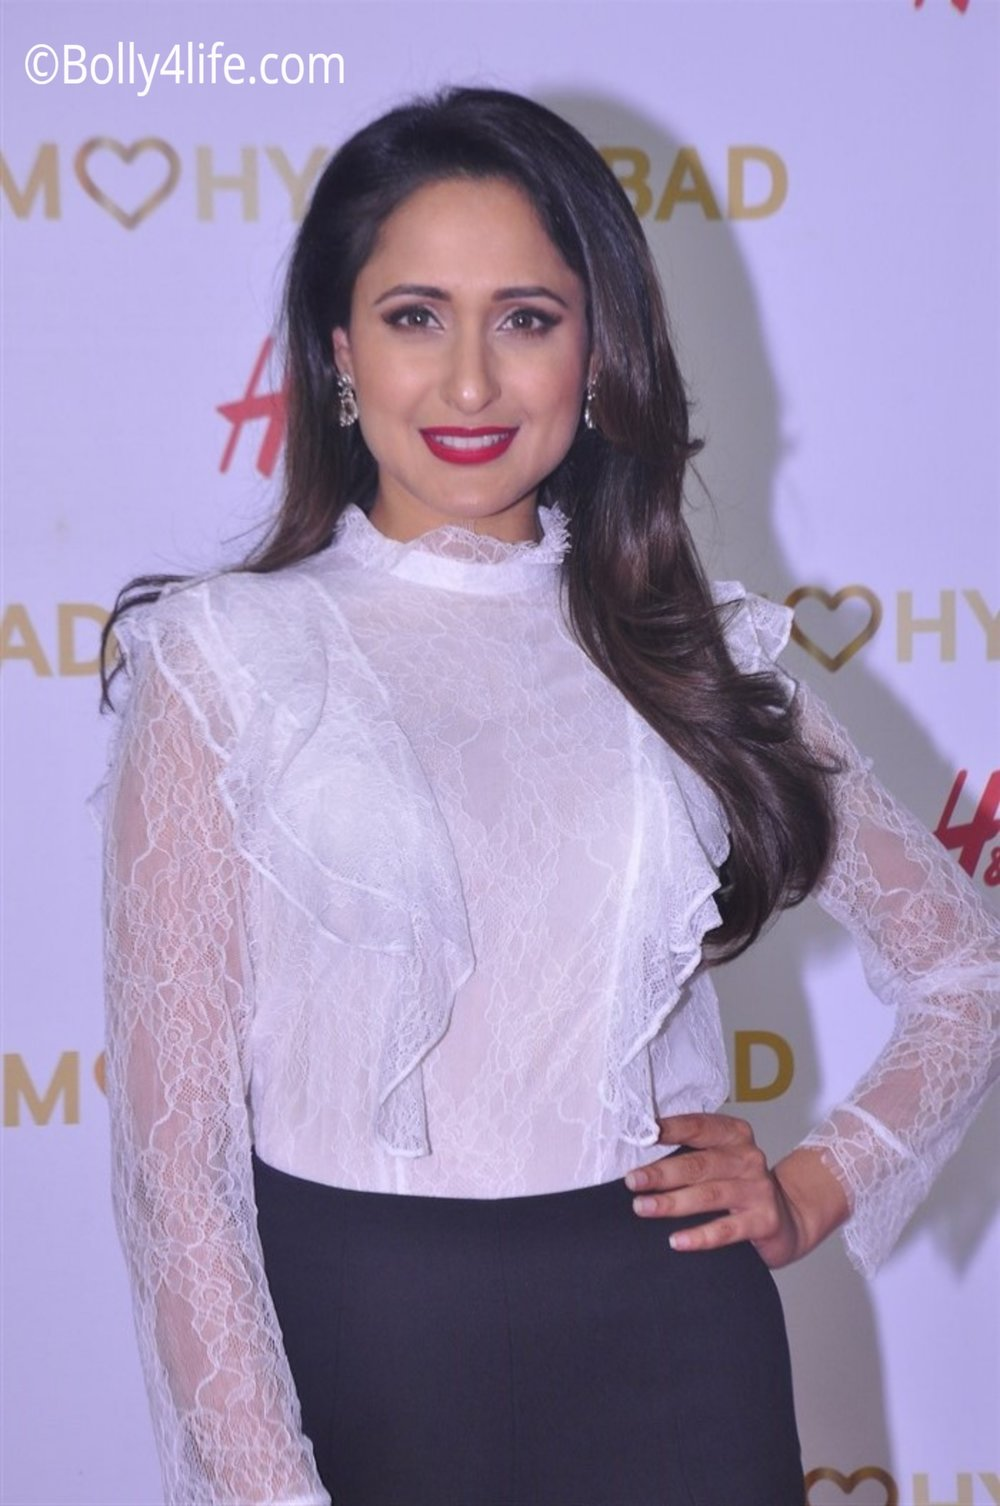 actress-hms-vip-party-inorbit-mall-hyderabad-38b3f60.jpg